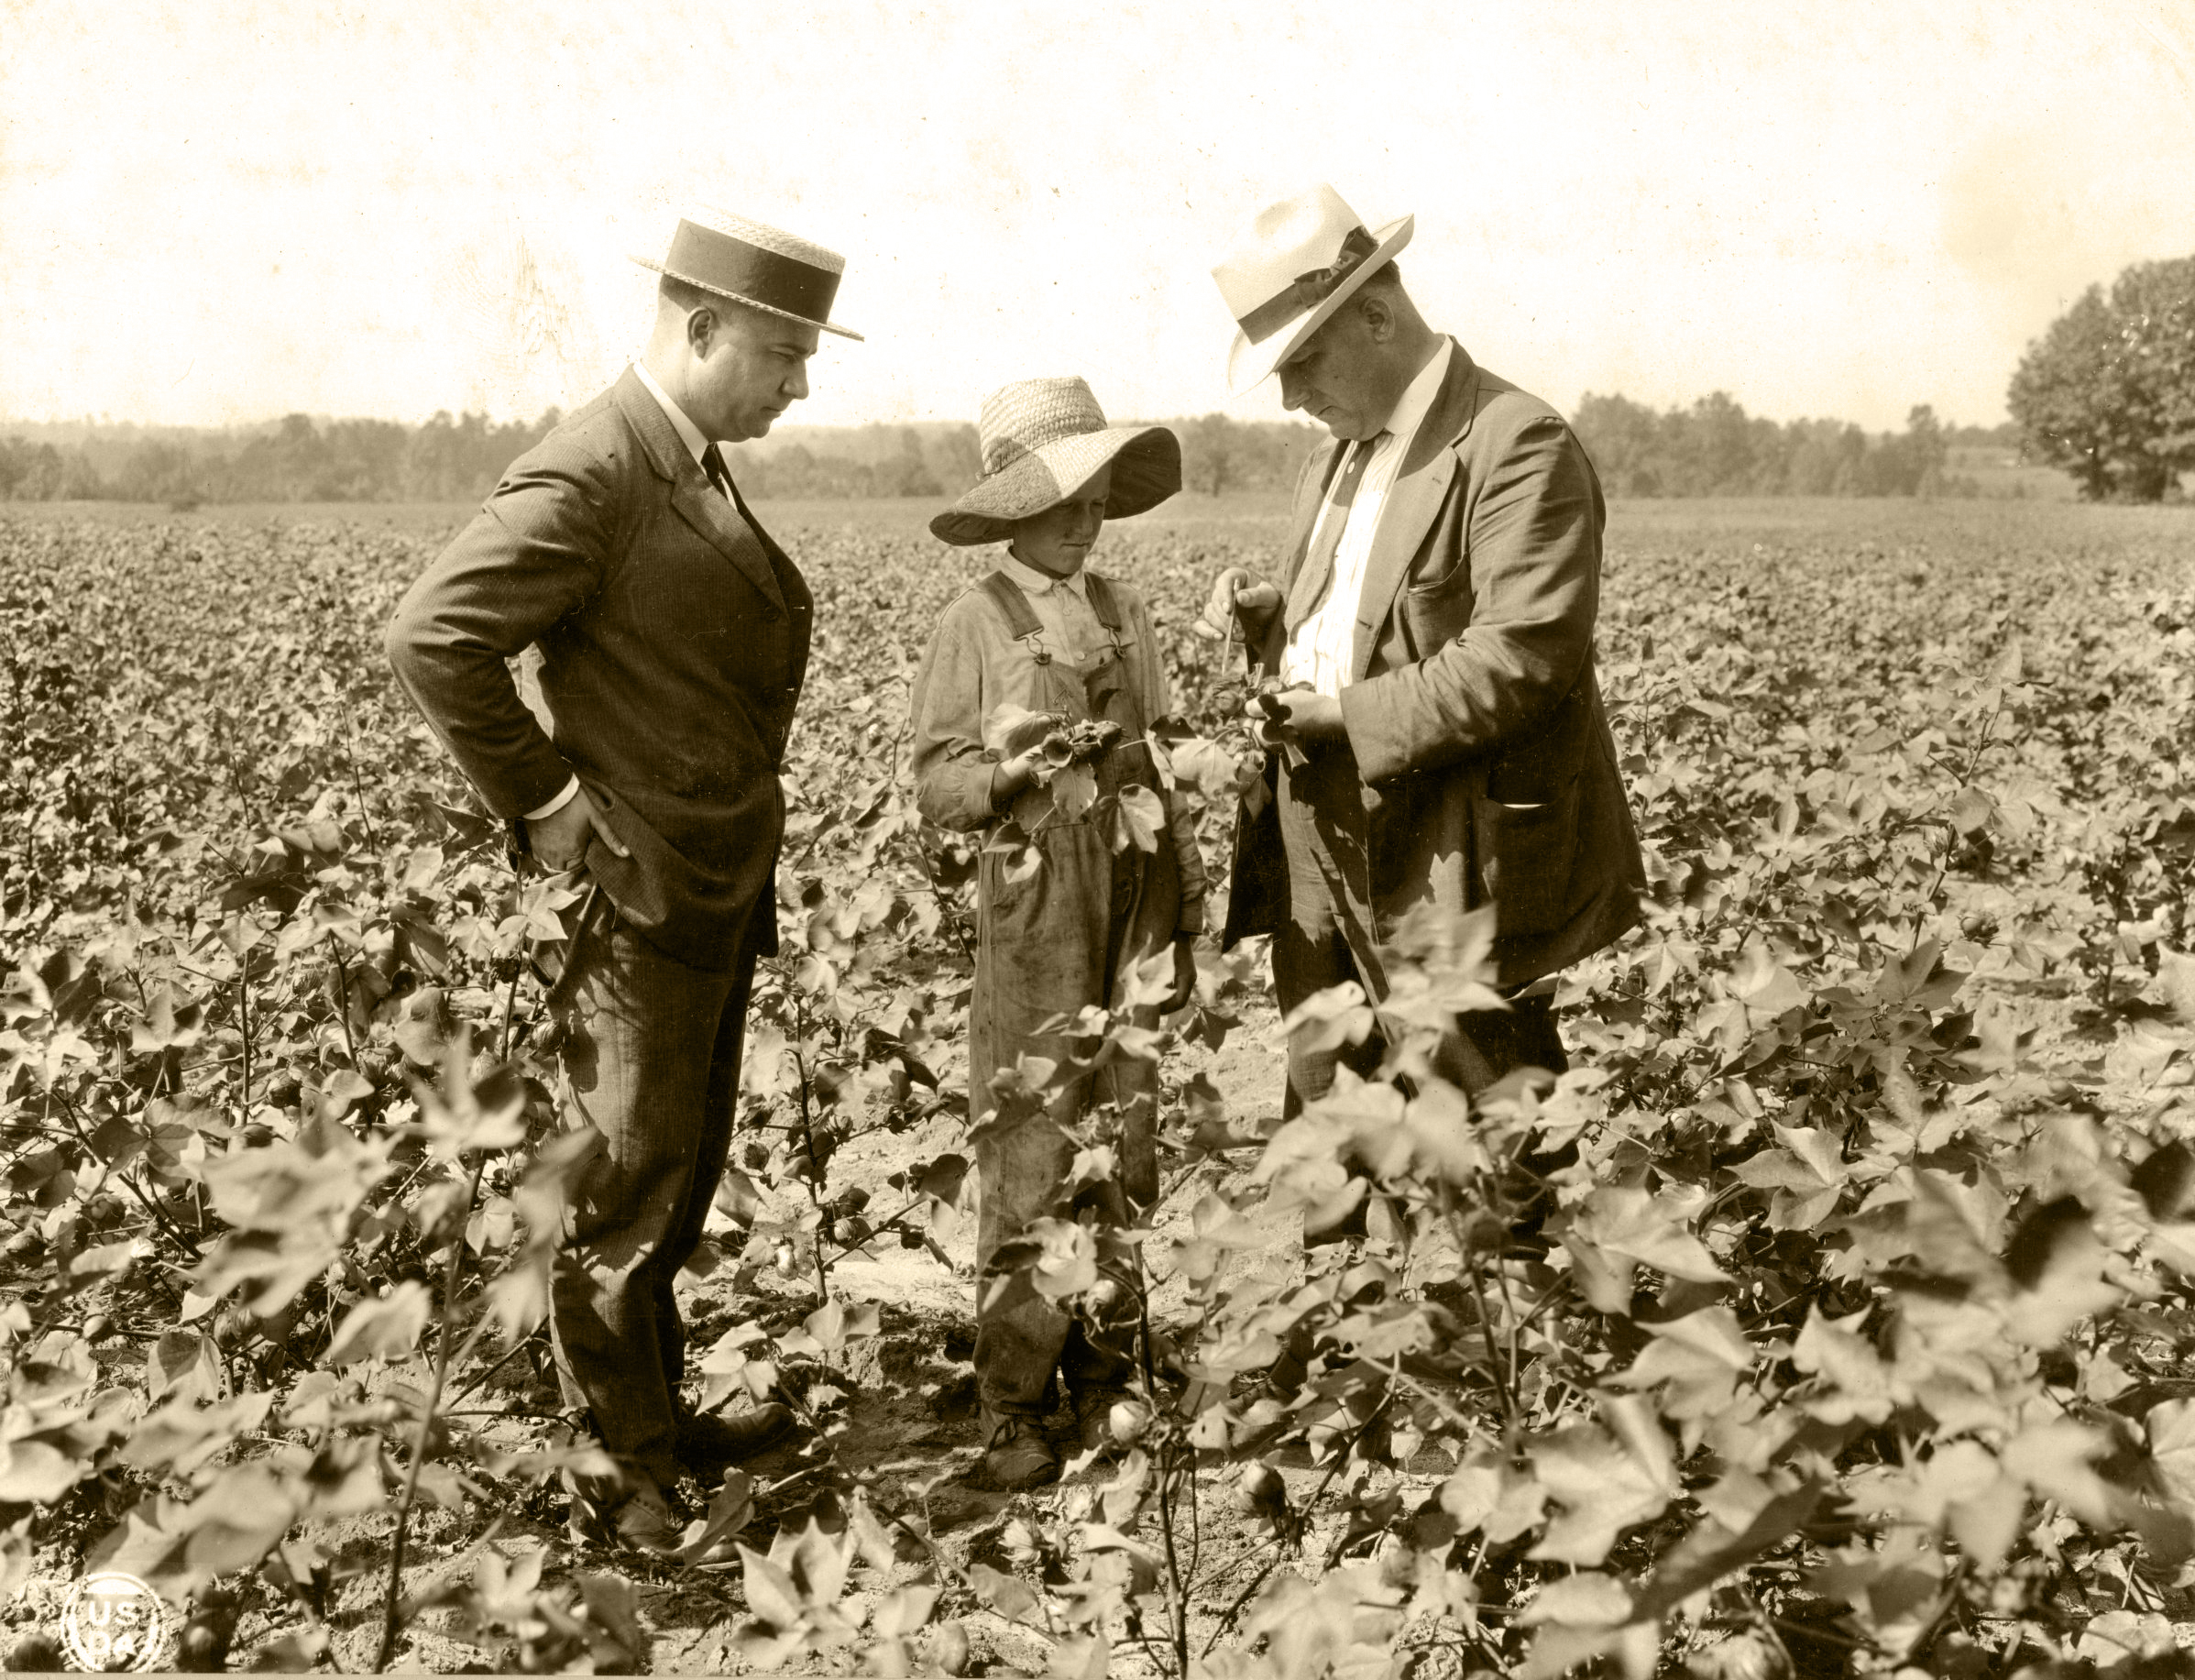 County agent R.W. Graham watches as Frank H. Jeter, right, explains to an Extension club member how to control boll-rot on cotton.